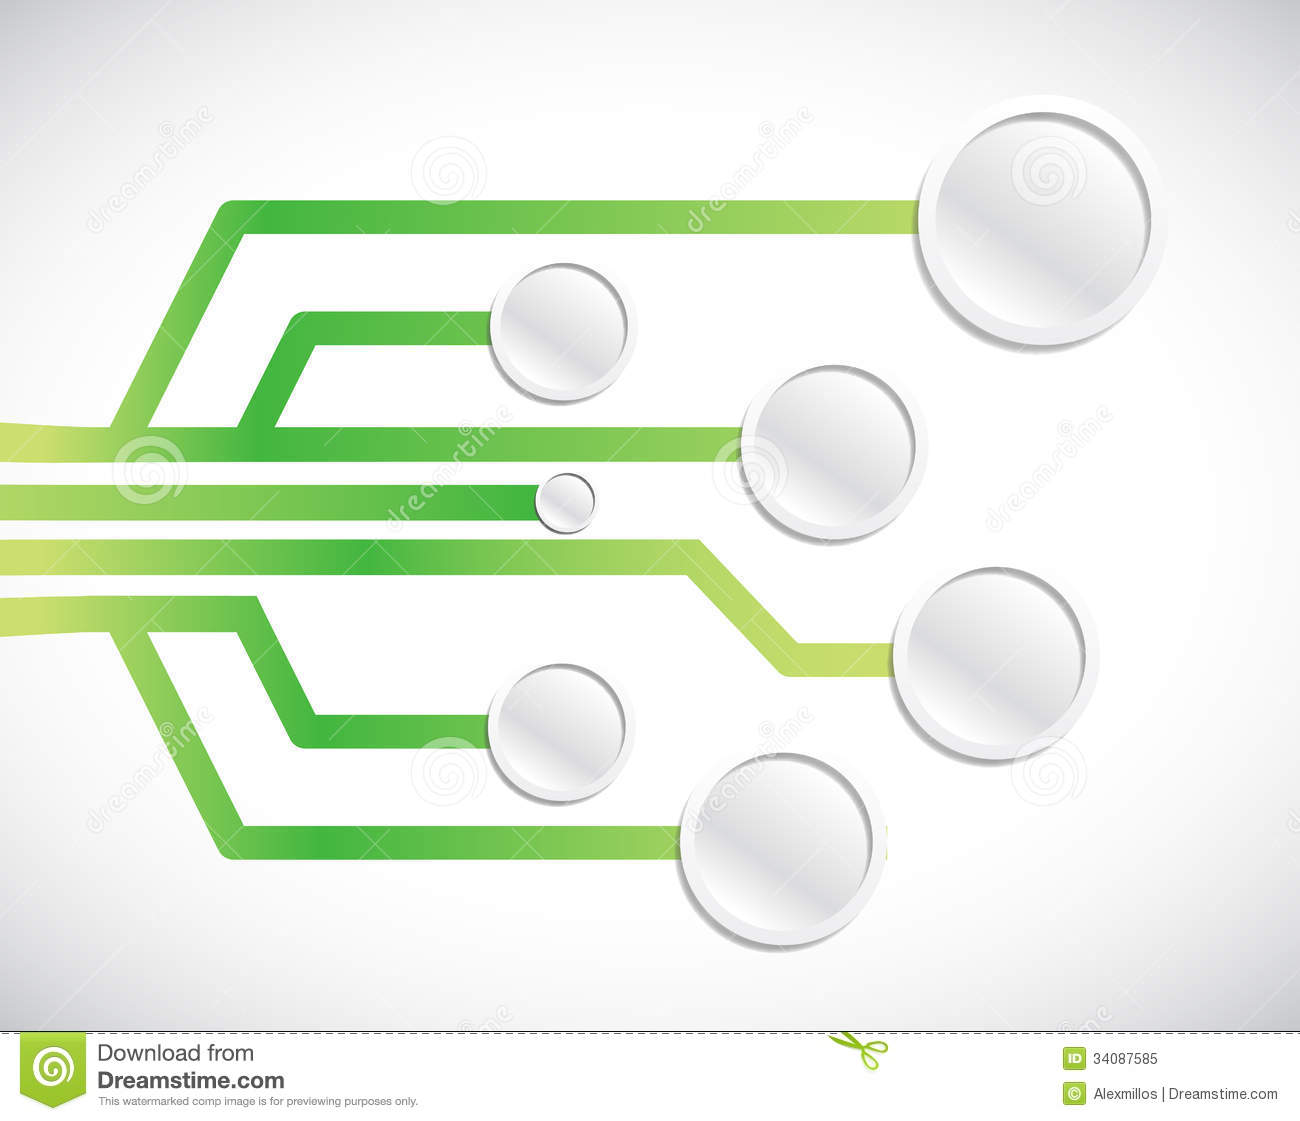 Circuit Design Royalty Free Stock Image 7756 Board Images 31188634 Network Diagram Illustration Photo 34087585